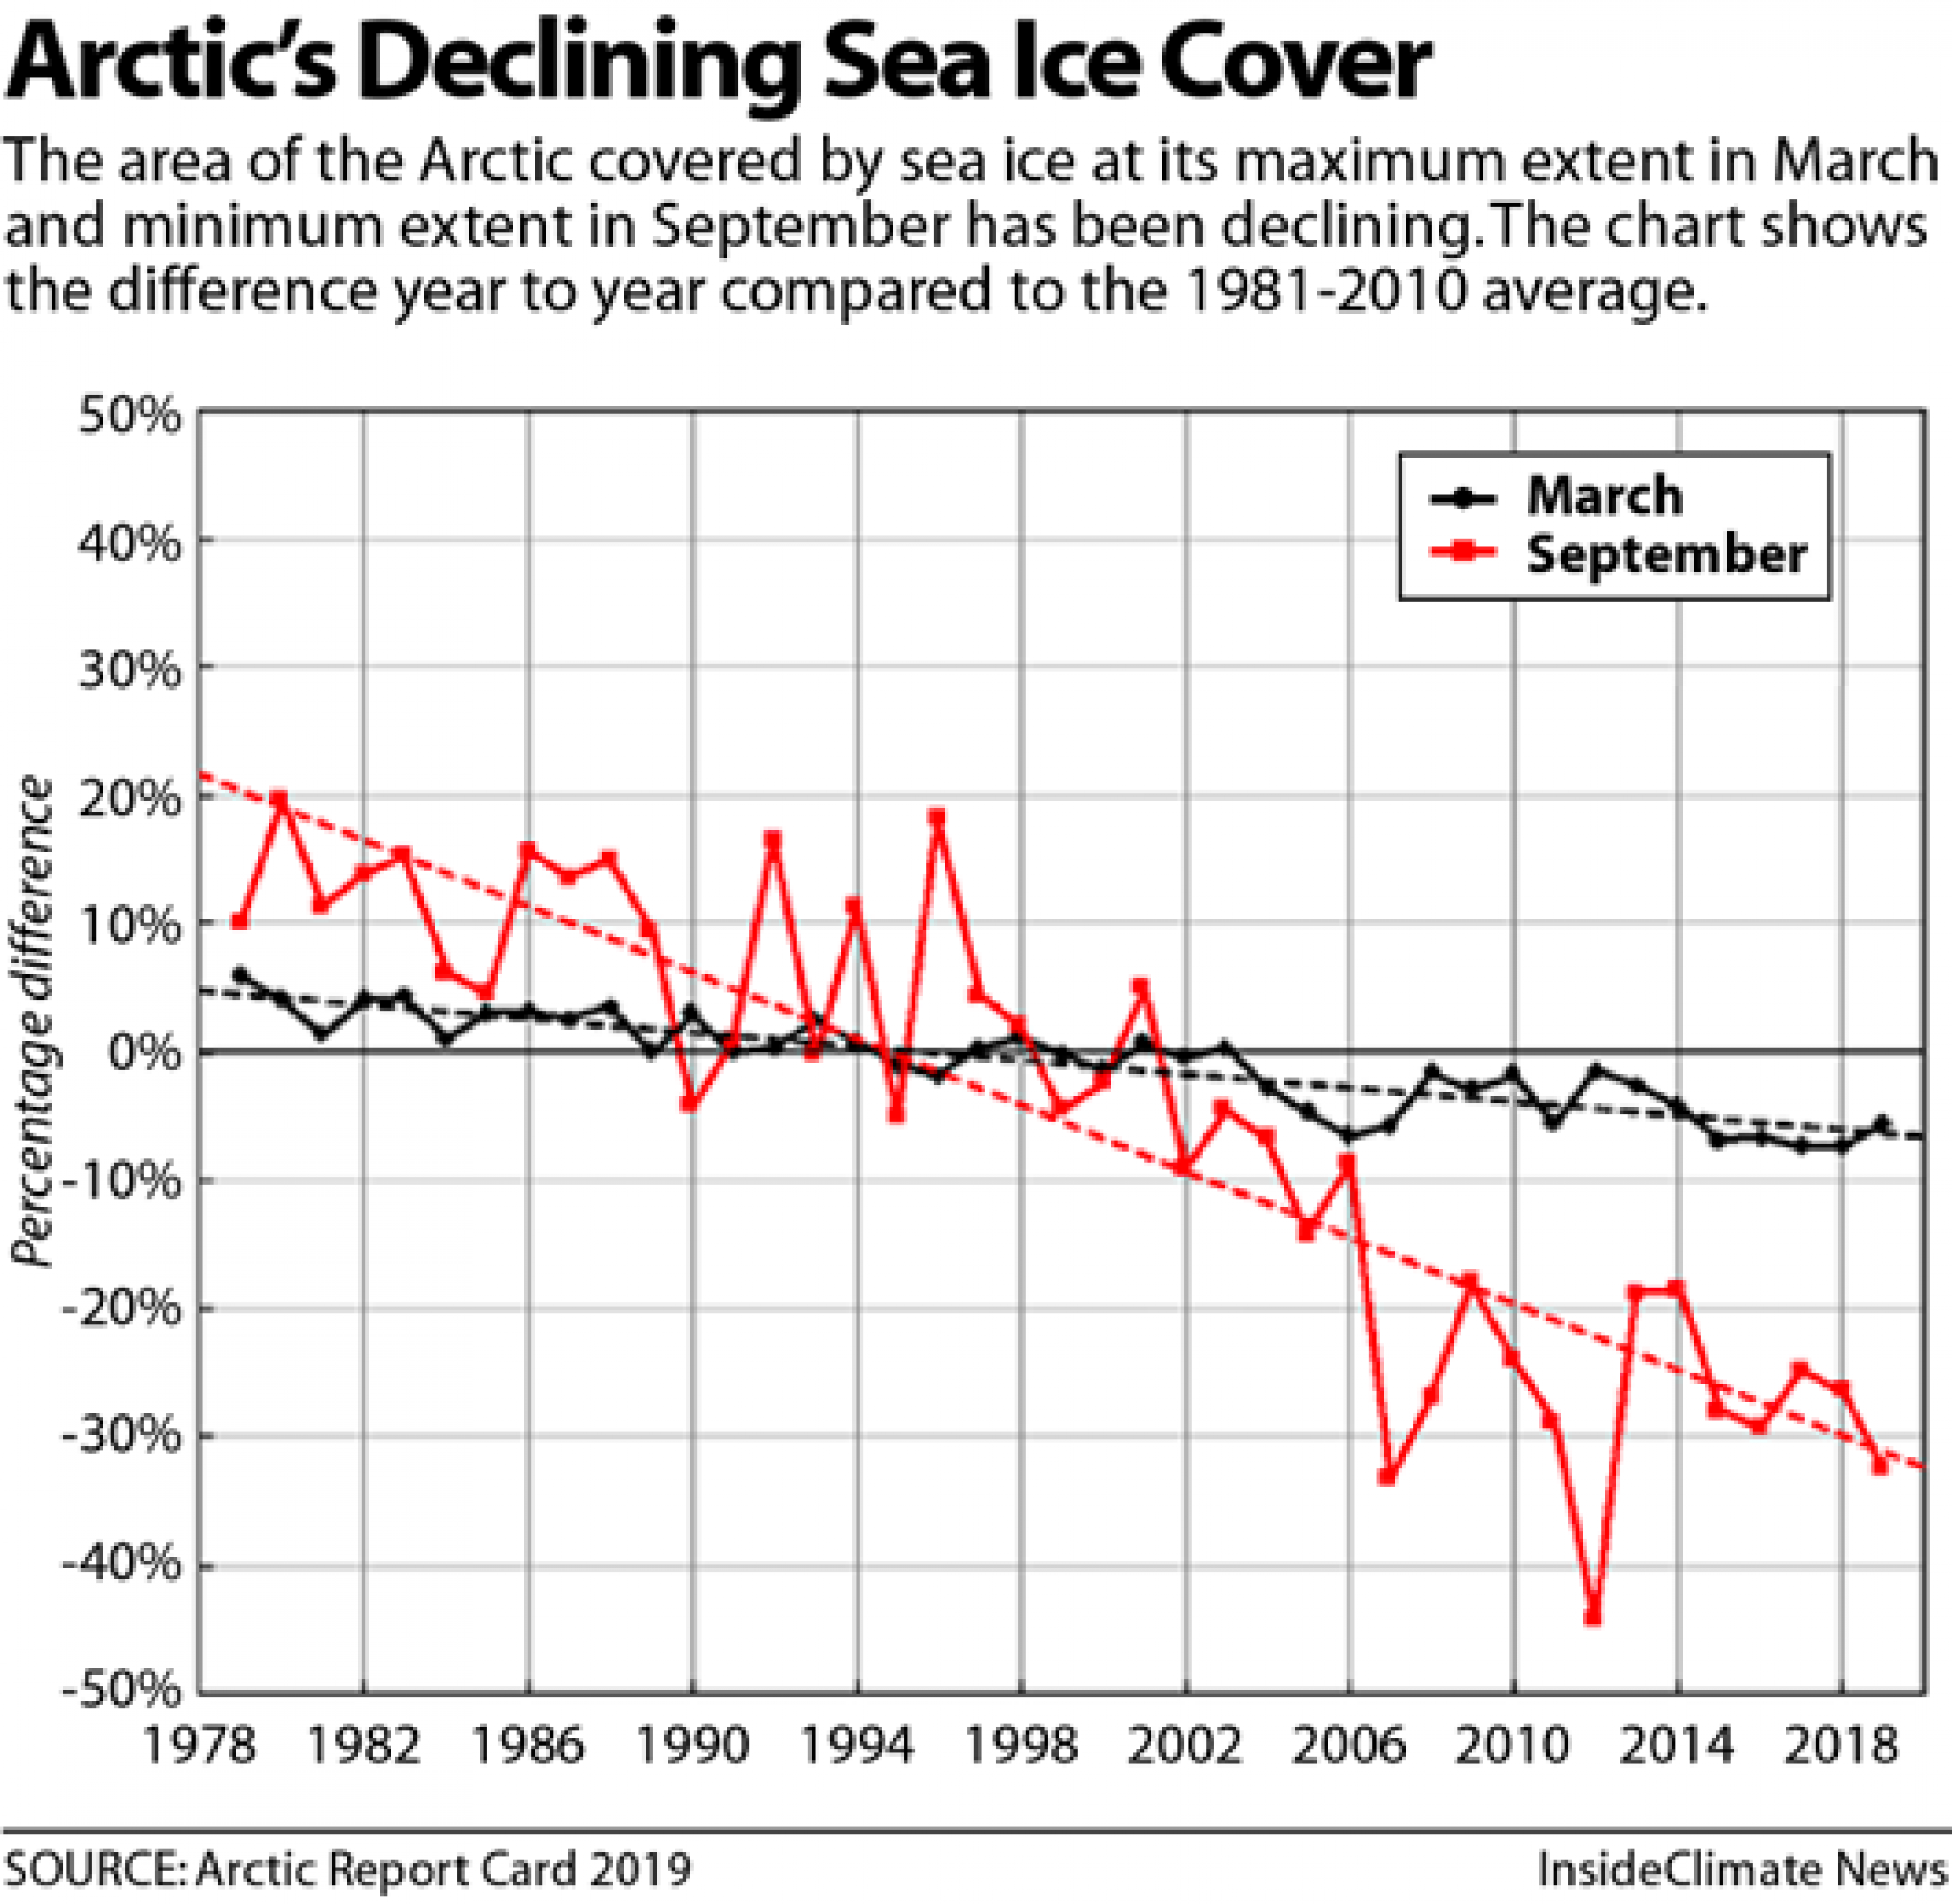 A graph showing the decline of sea ice in the Arctic.